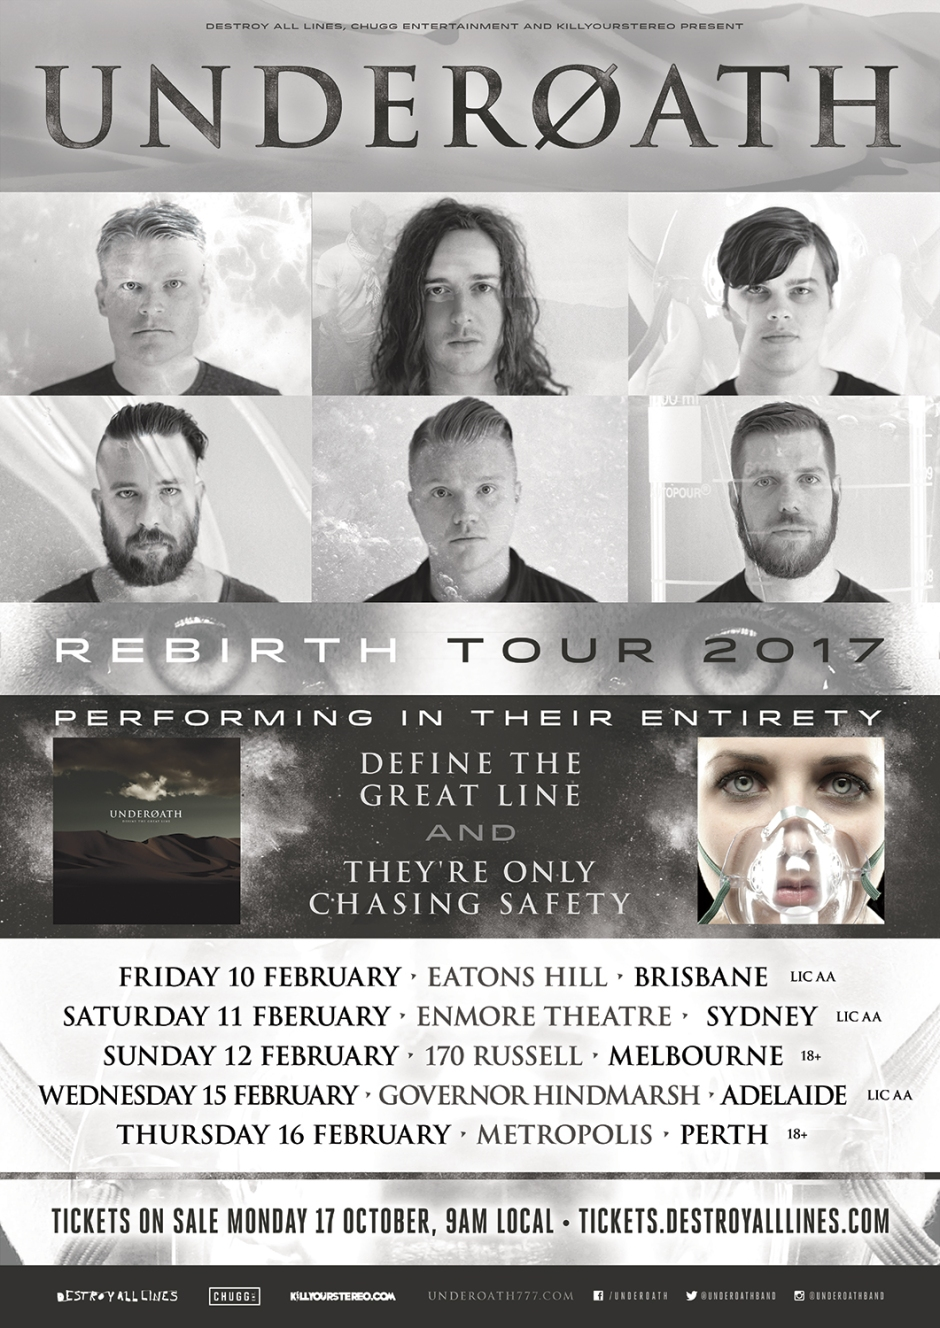 Underoath Australian Tour They're Only Chasing Safety Define The Great Line Aaron Gillespie